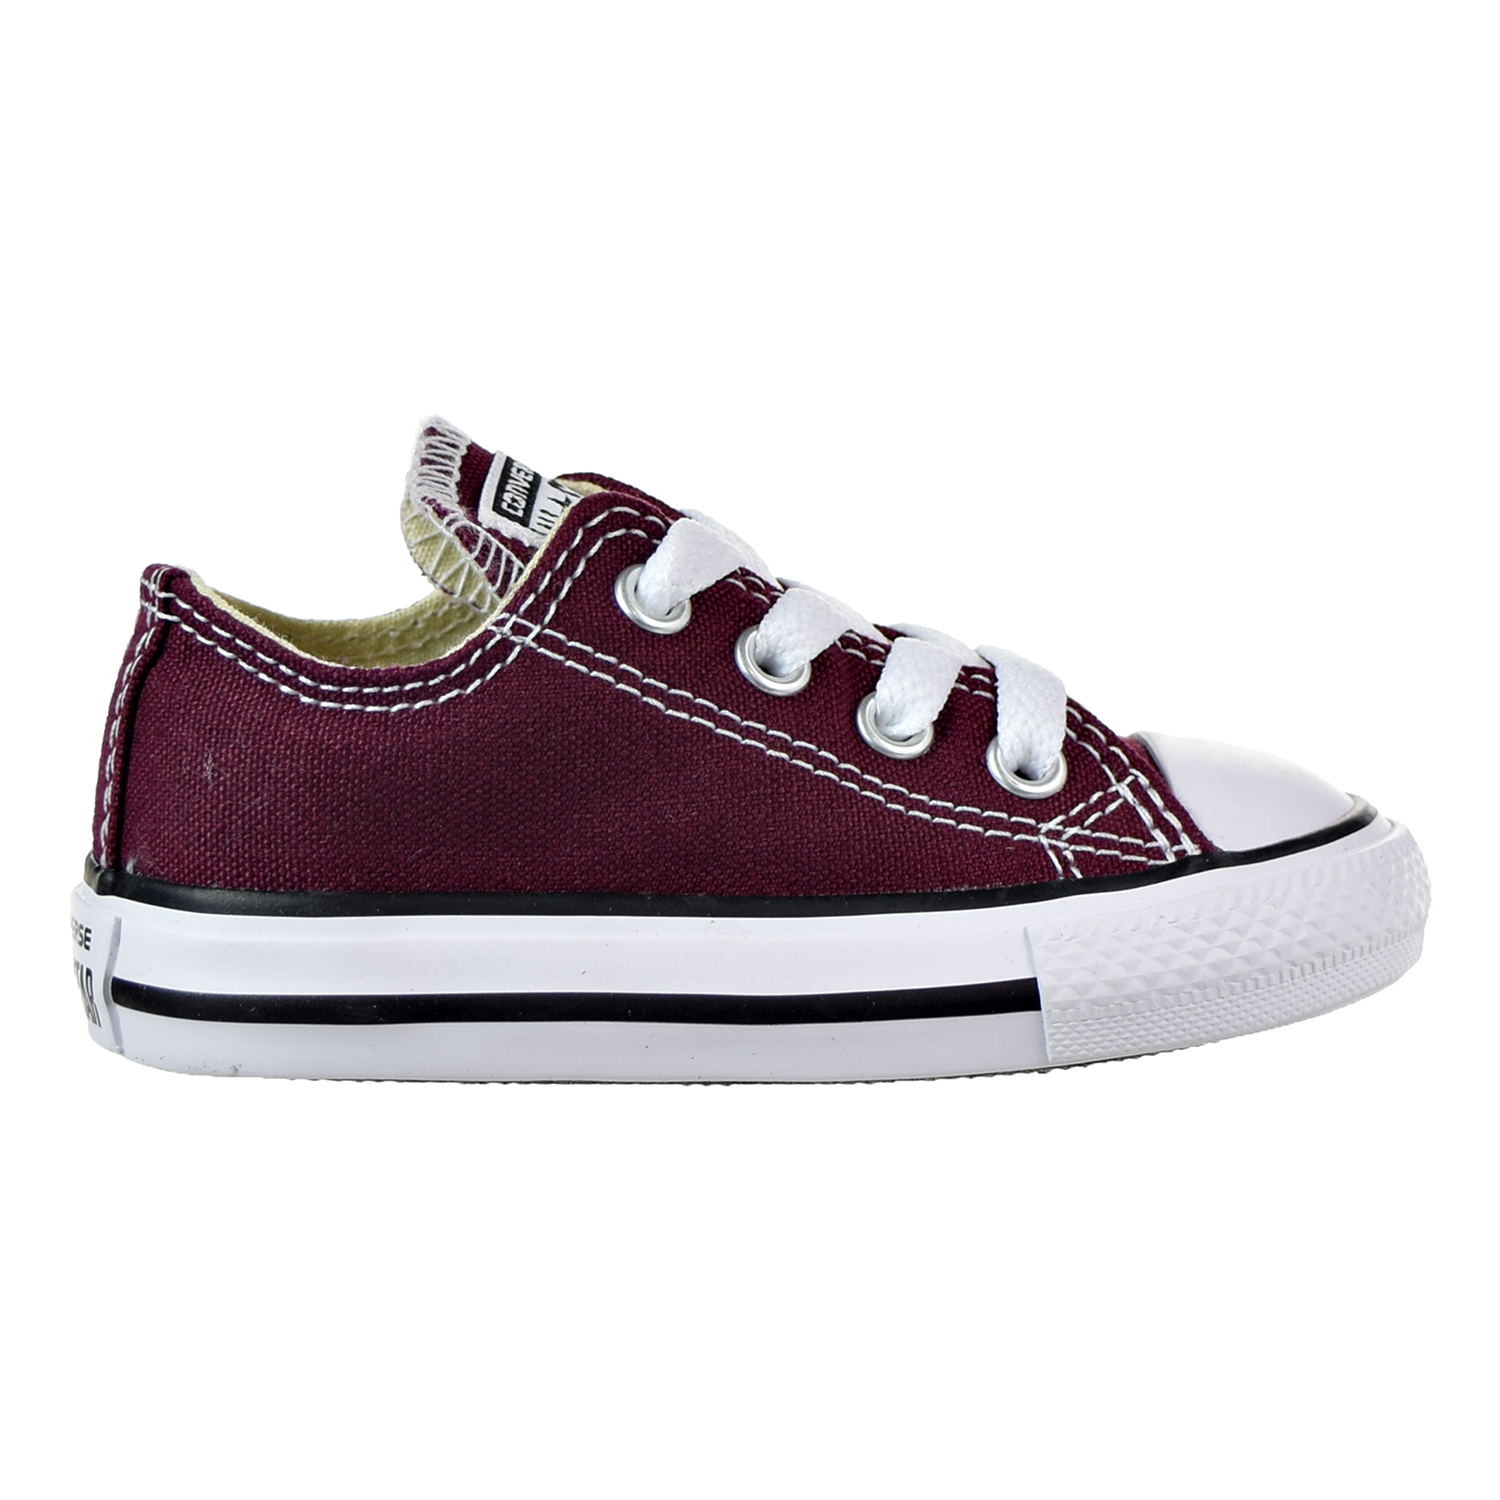 c64c0cf1b4cb78 Converse Chuck Taylor All Star Ox Toddler Shoes Burgundy 739794f -  Walmart.com